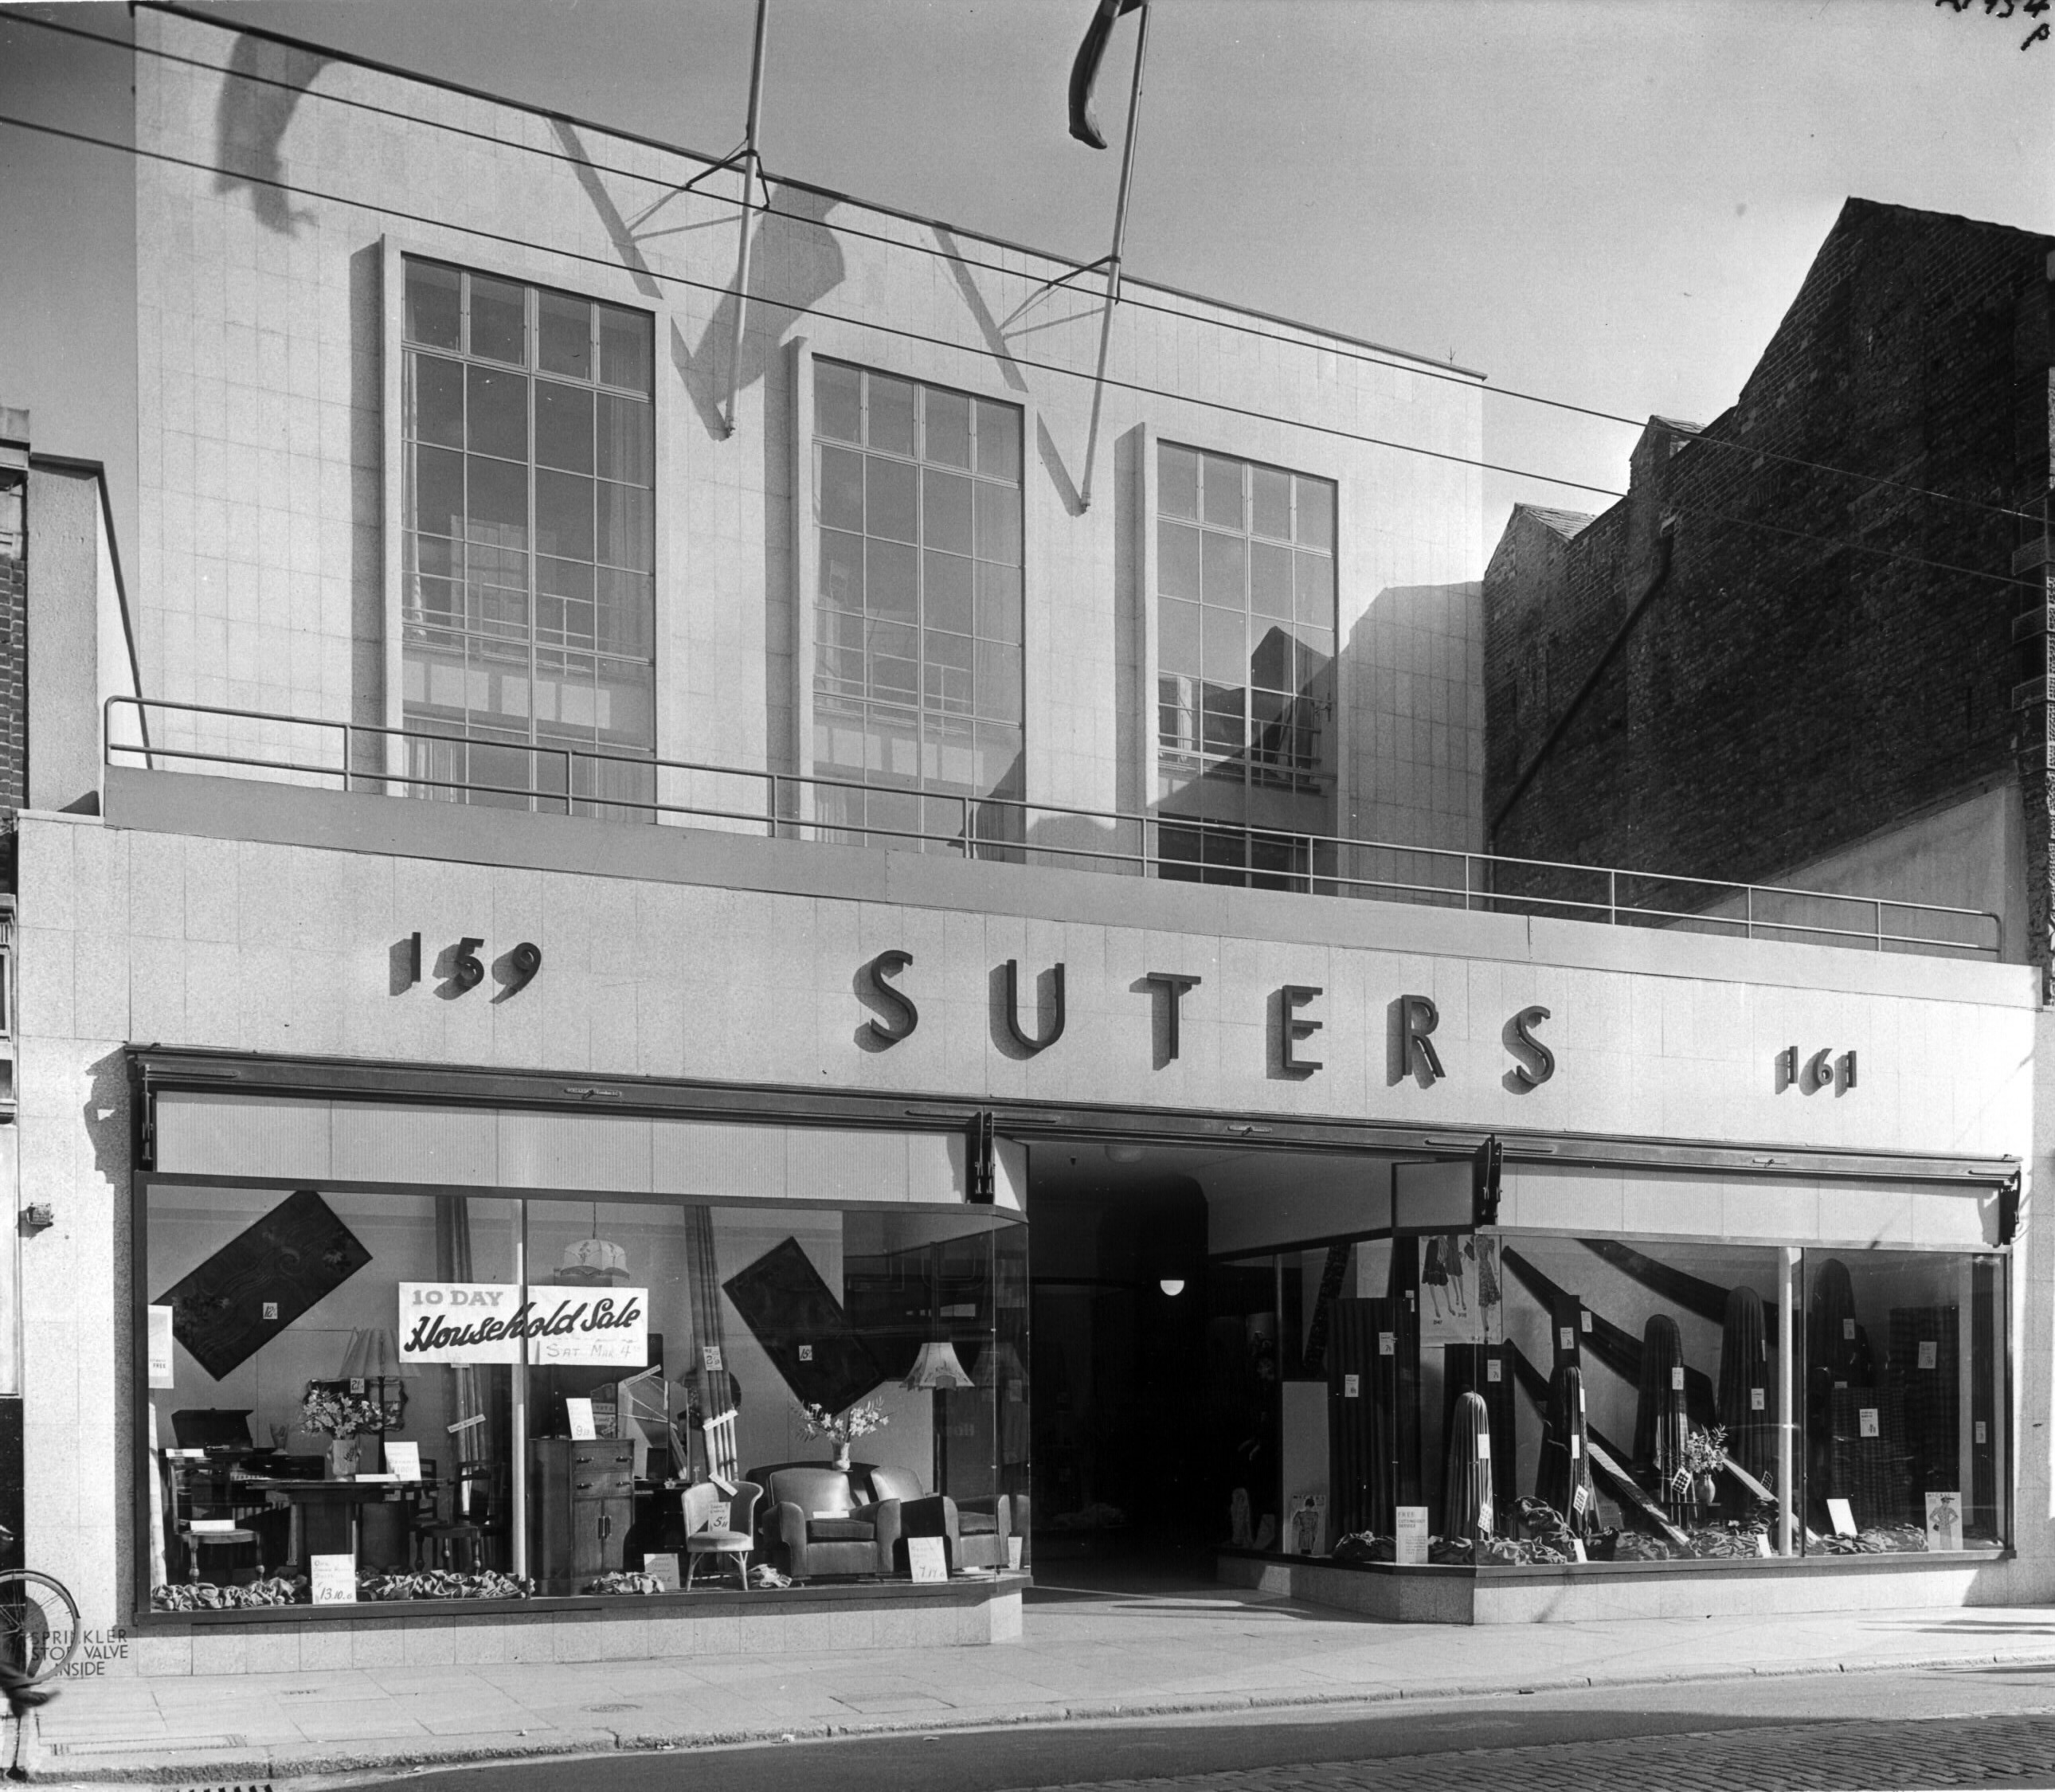 Growing Up With Suters Ltd